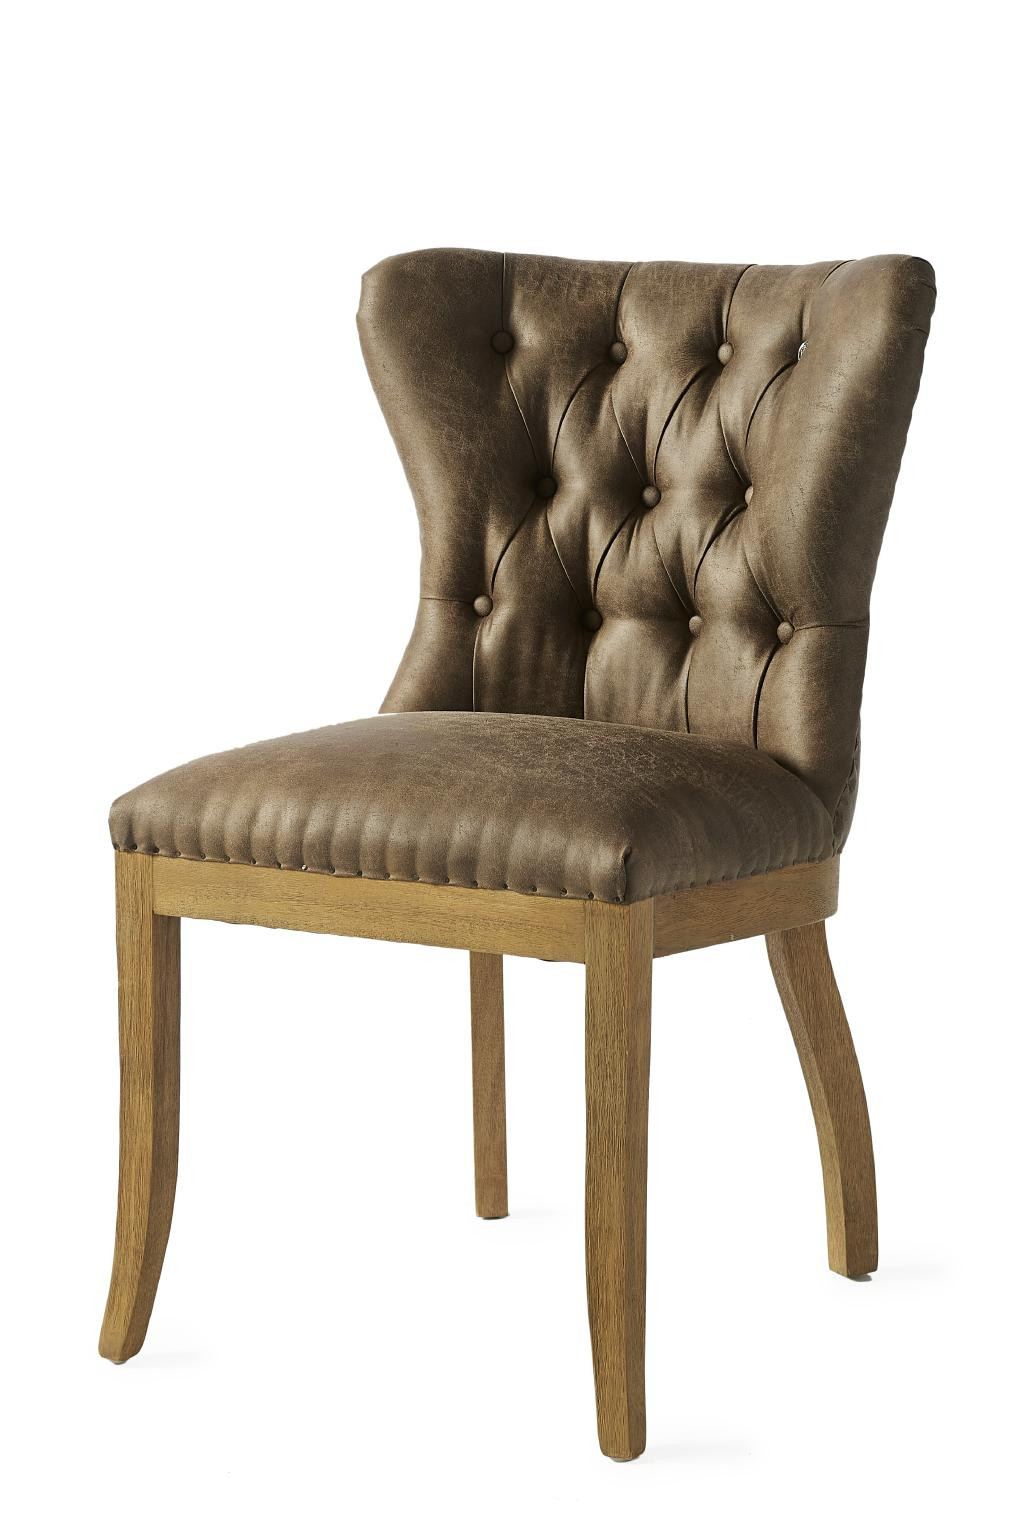 Wessex Dining Chair, pellini, coffee / Rivièra Maison